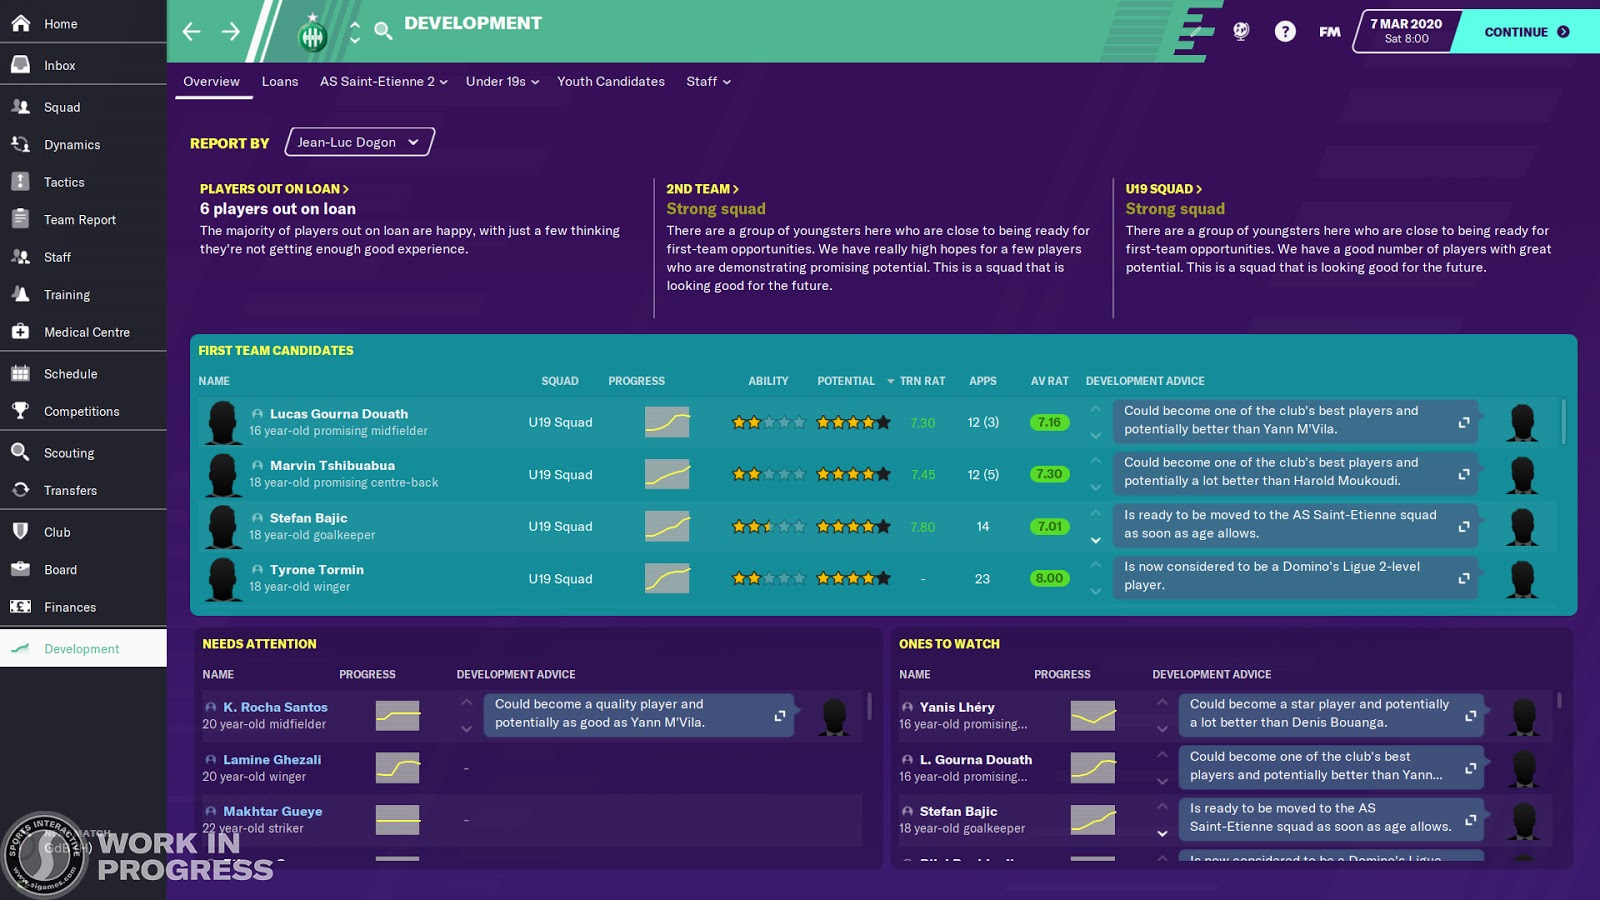 The overview screen on the Development Centre in Football Manager 2020